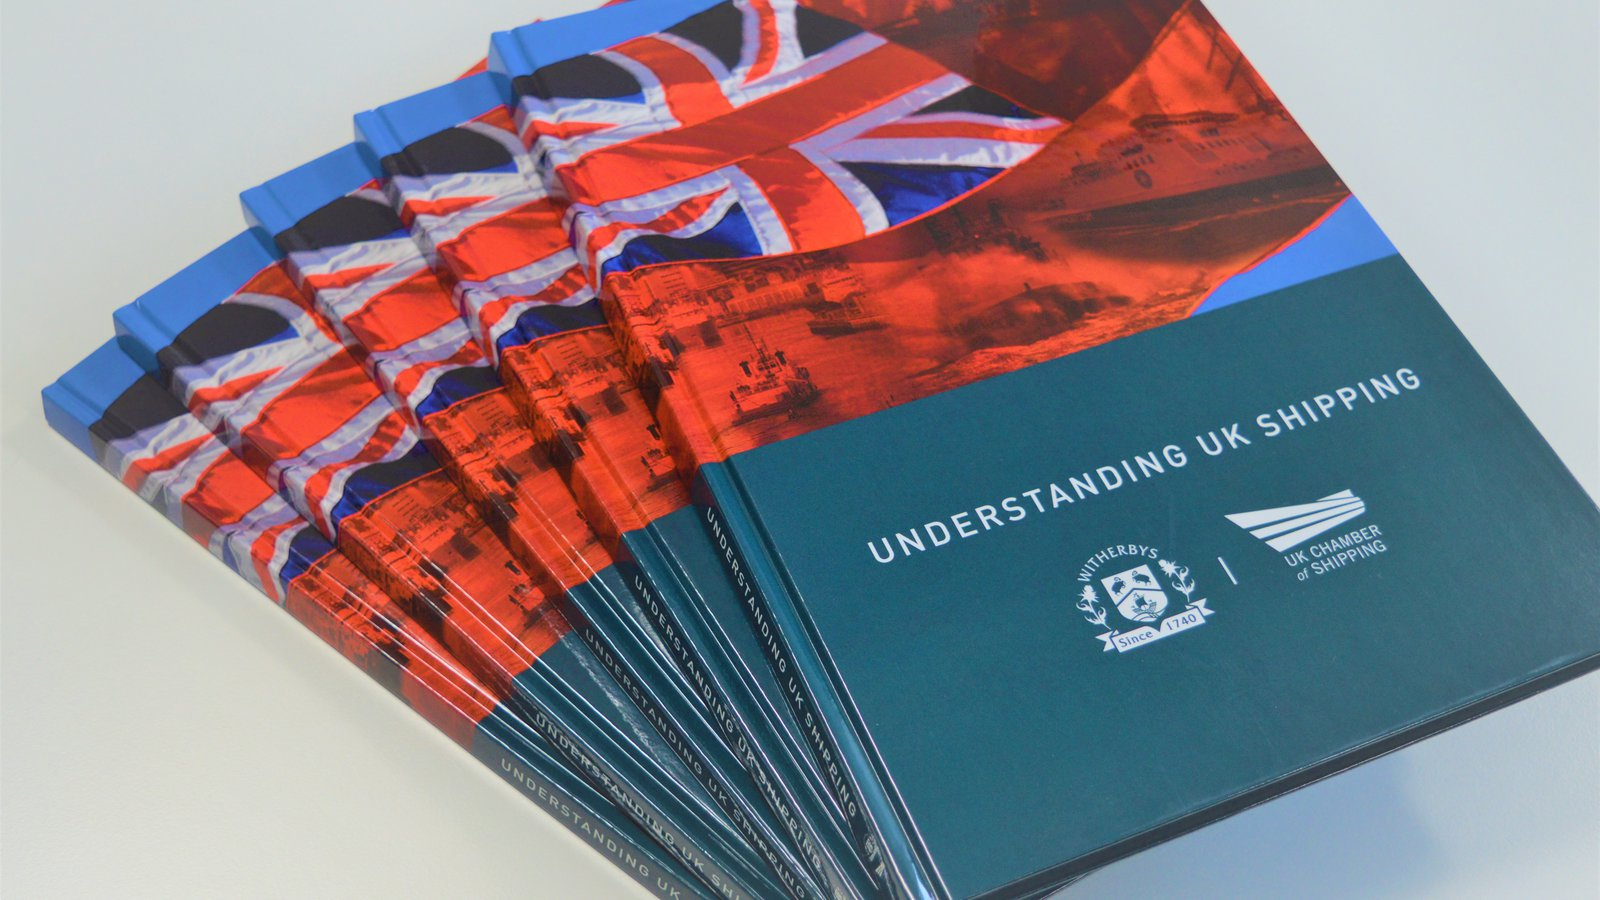 understanding UK shipping book